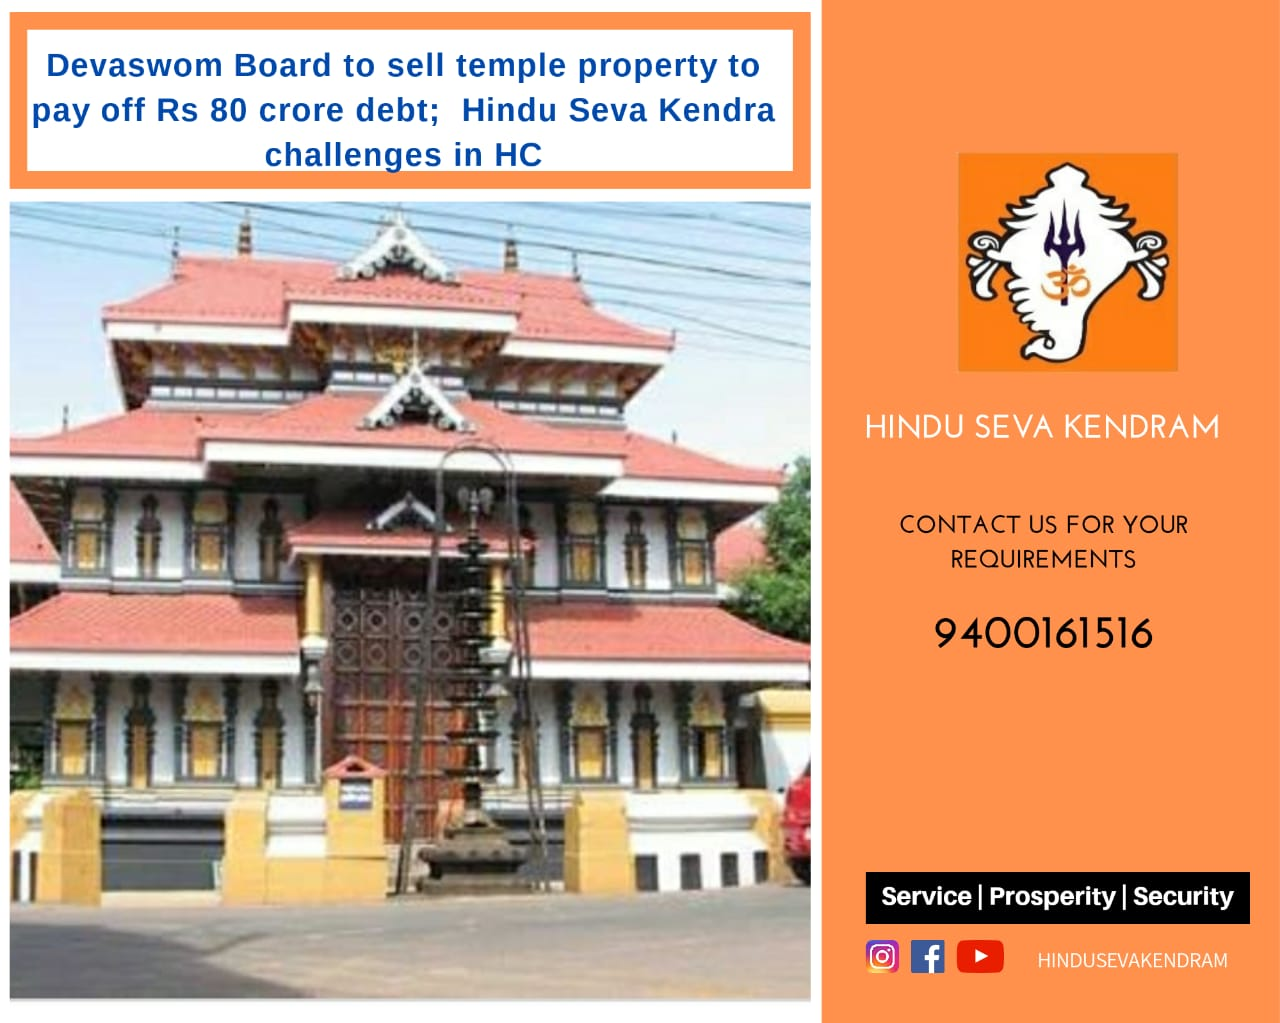 Devaswom Board to sell temple property to pay off Rs.80 Crore Debt; Hindu Seva Kendram challenges in HC